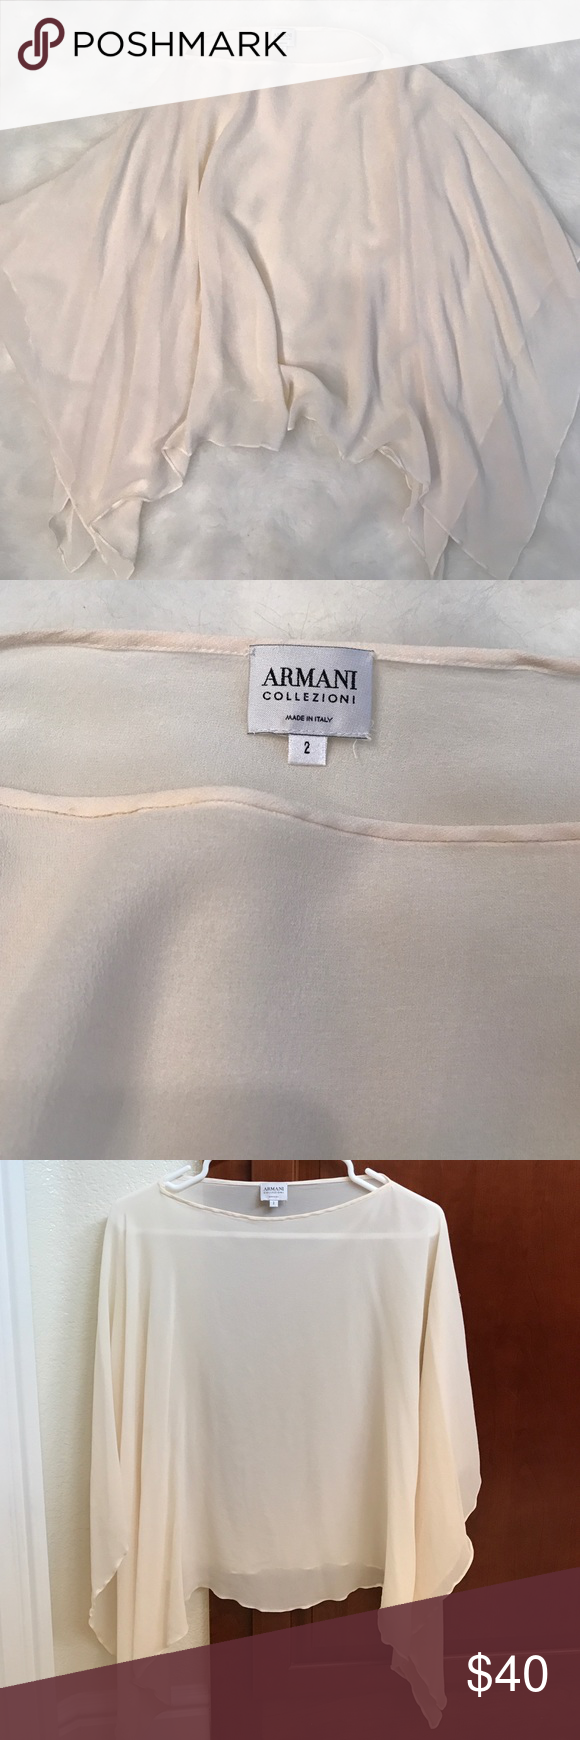 Armani boho poncho style top Dainty off white, sheer poncho style top by Armani. No arm holes, just slip on over head. Armani Collezioni Tops Blouses